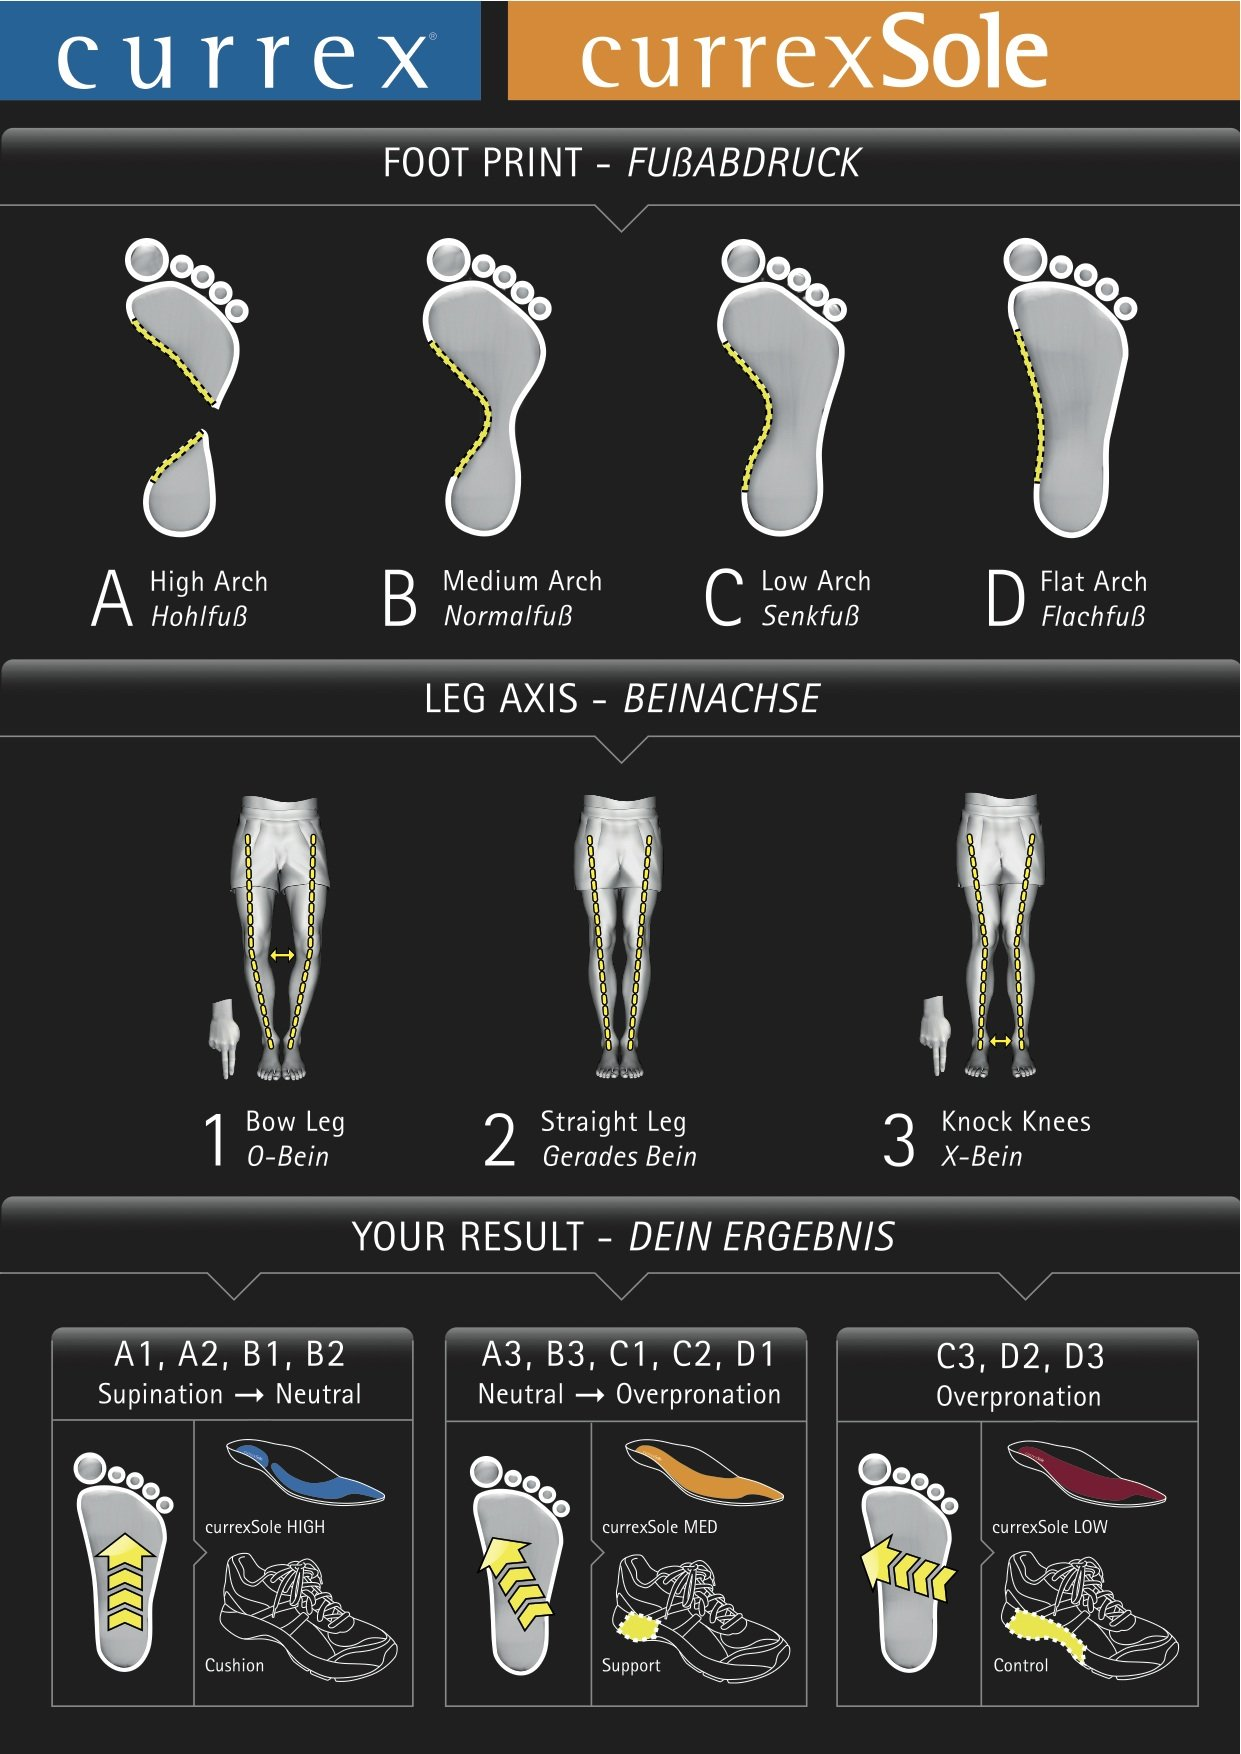 RunFree Insoles - Medium Arch Profile - Europe's Leading Insoles for Running & Walking, by currexSole (Footdisc)